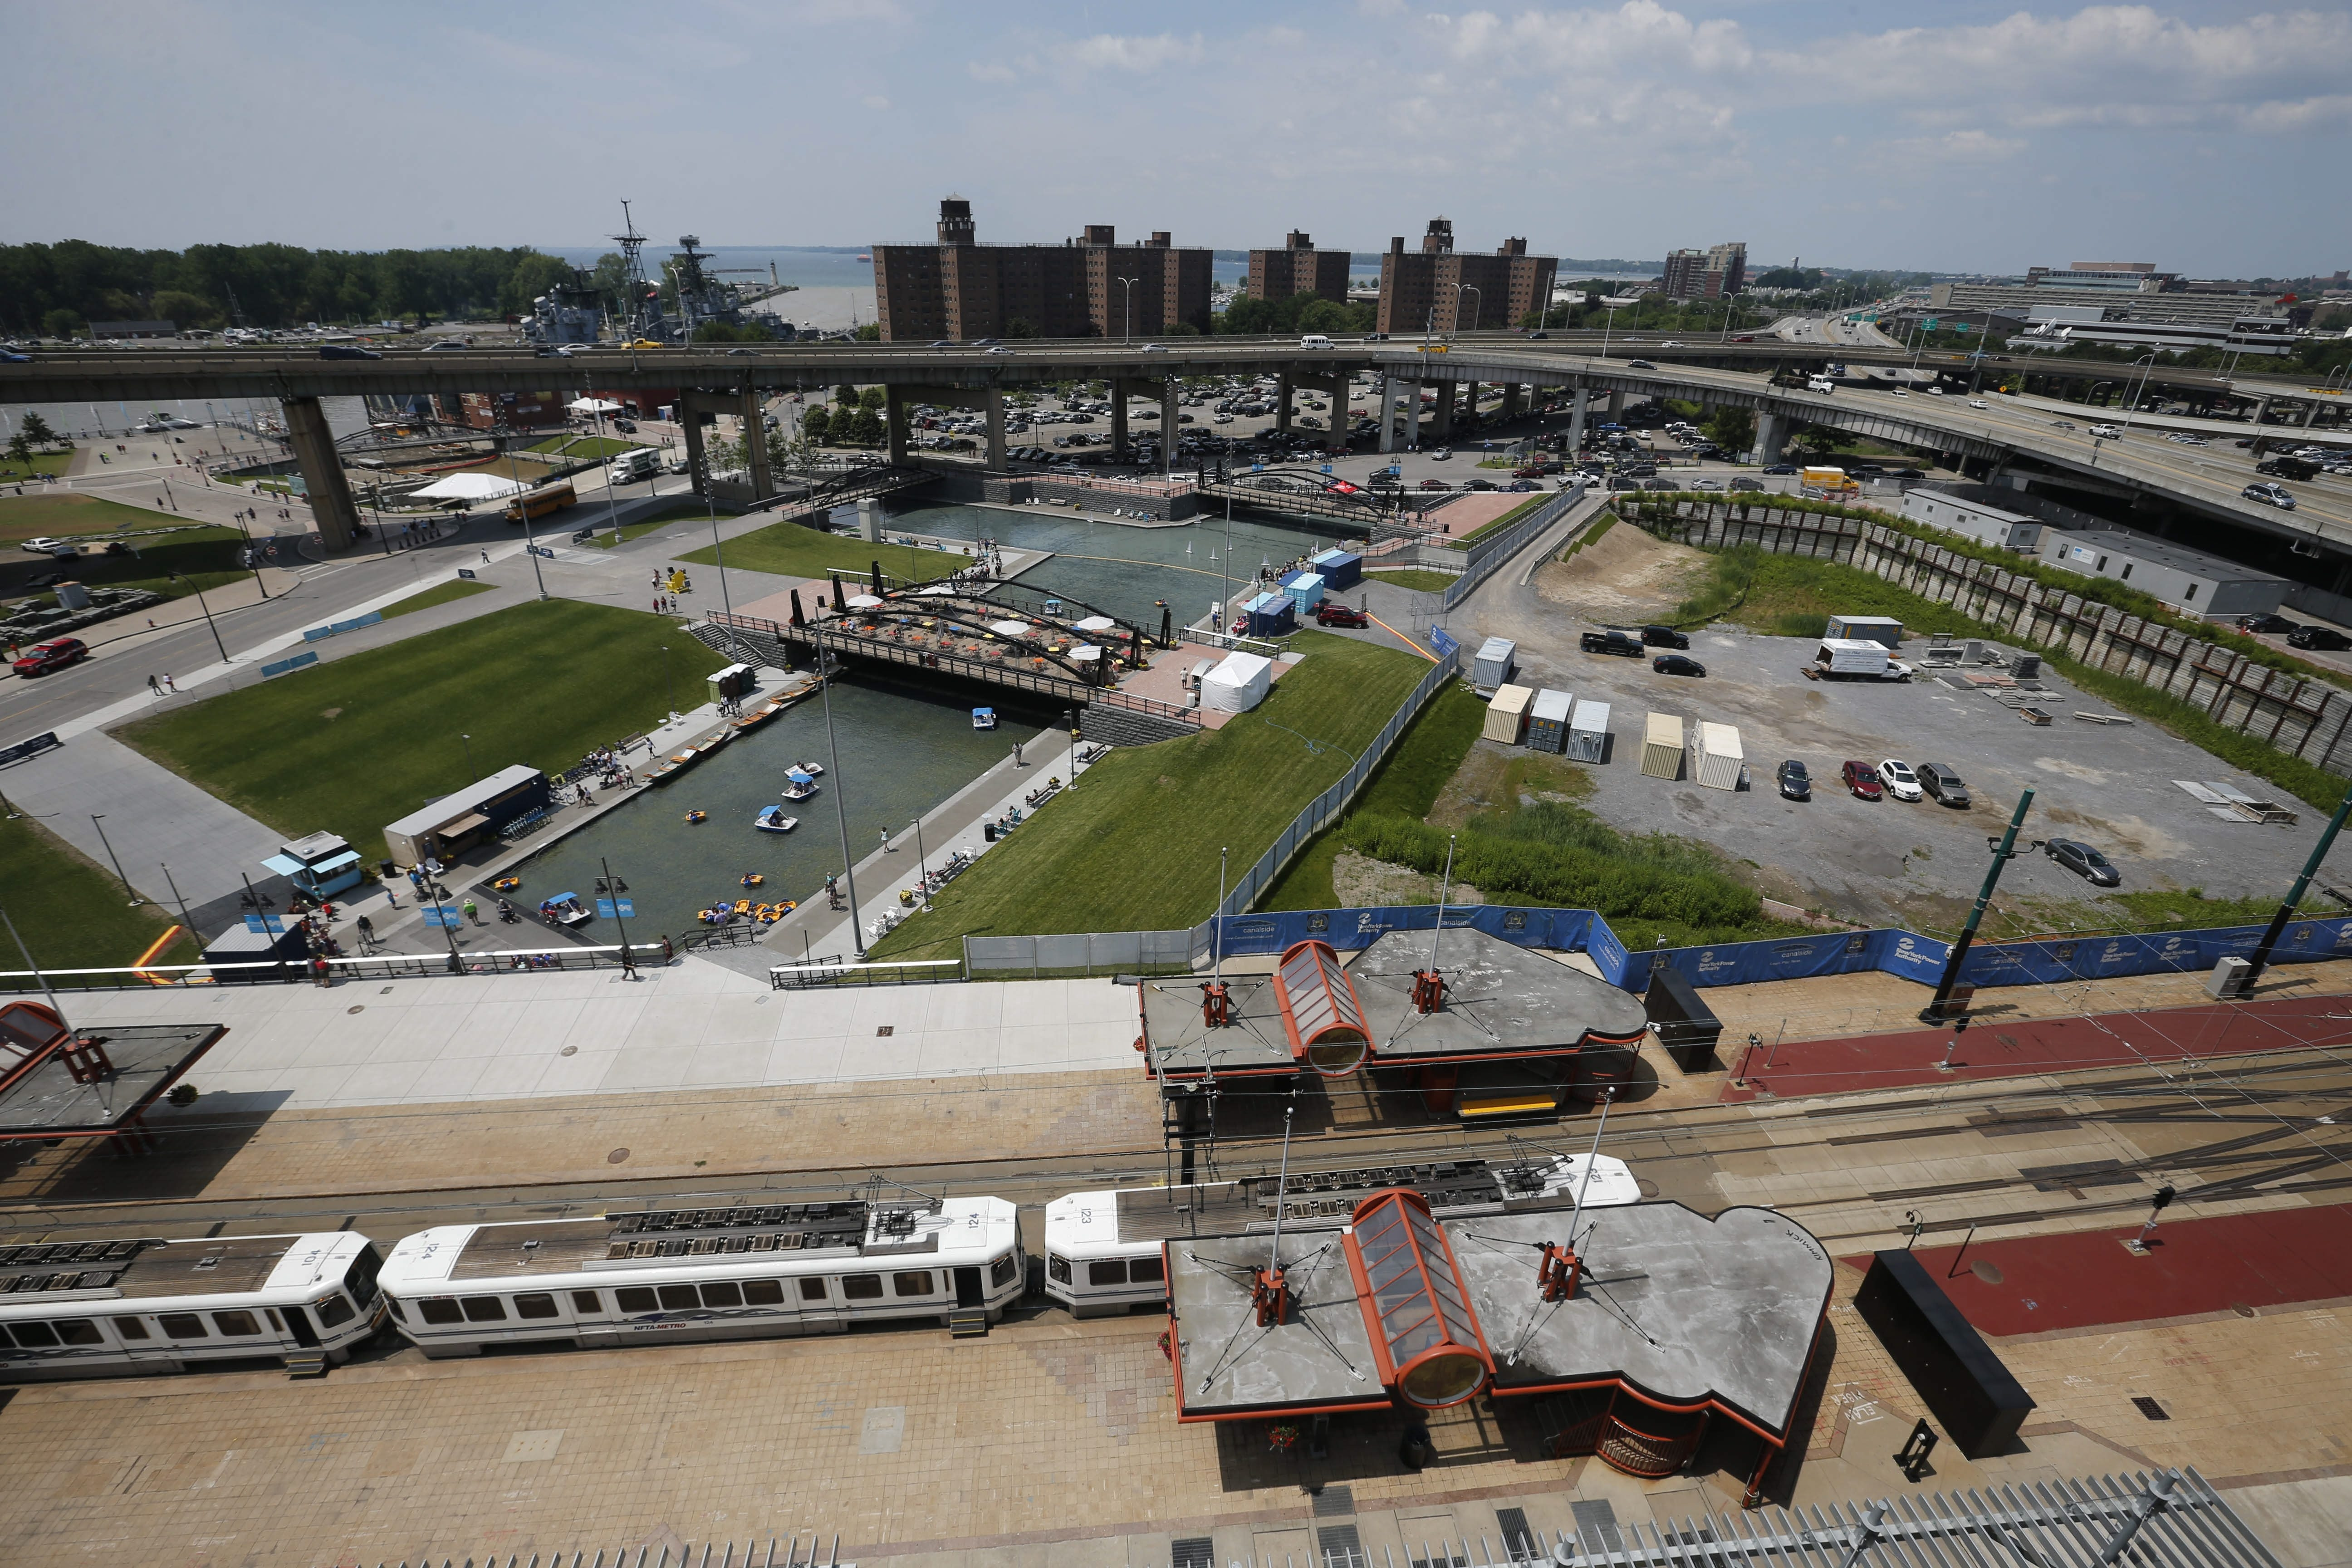 A great deal has already been accomplished at Canalside in Buffalo, but the foot of Main Street must be improved to welcome visitors.